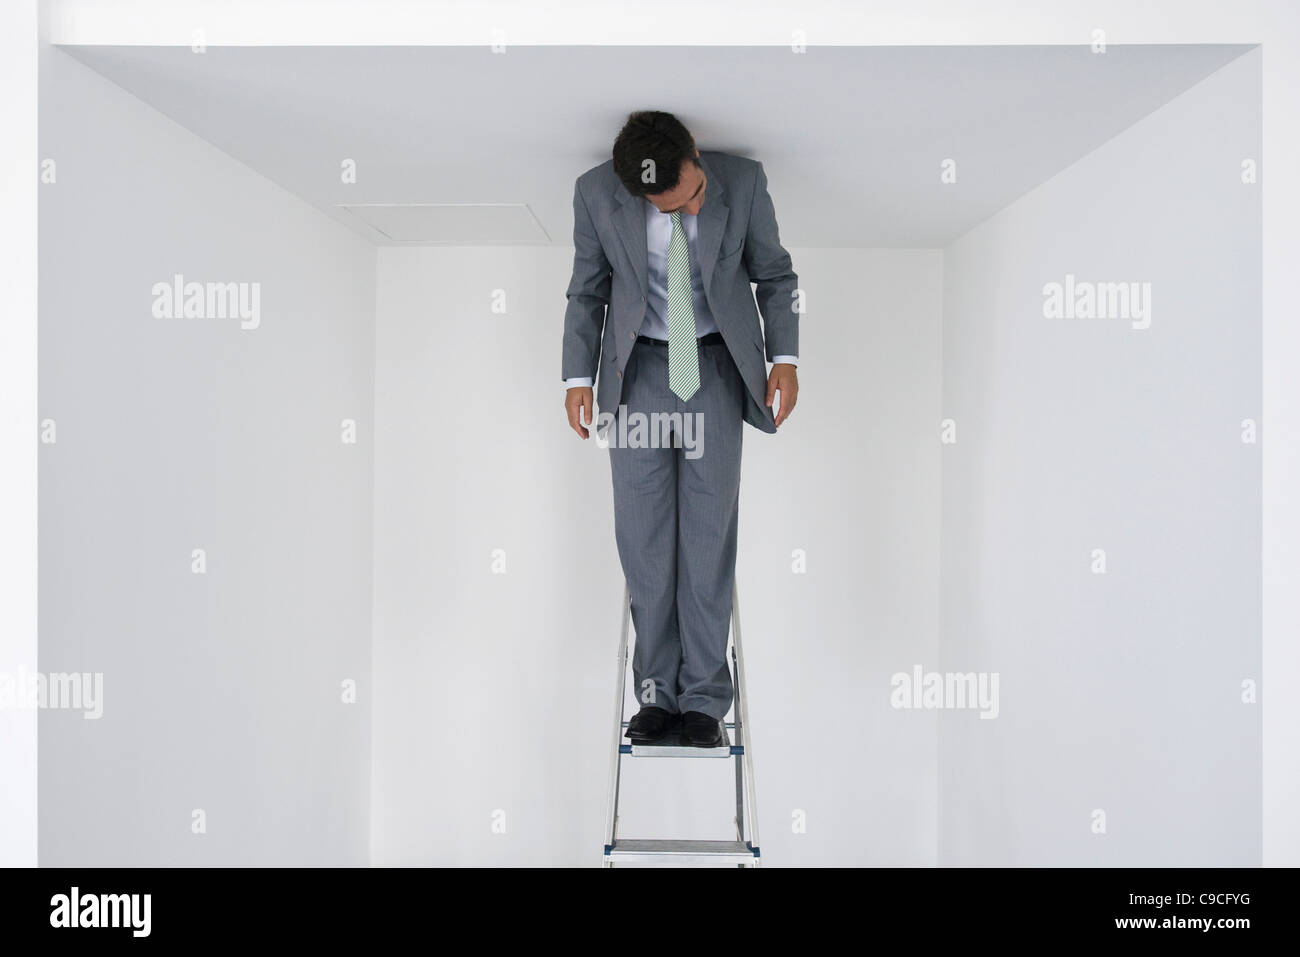 Executive standing on stepladder Stock Photo